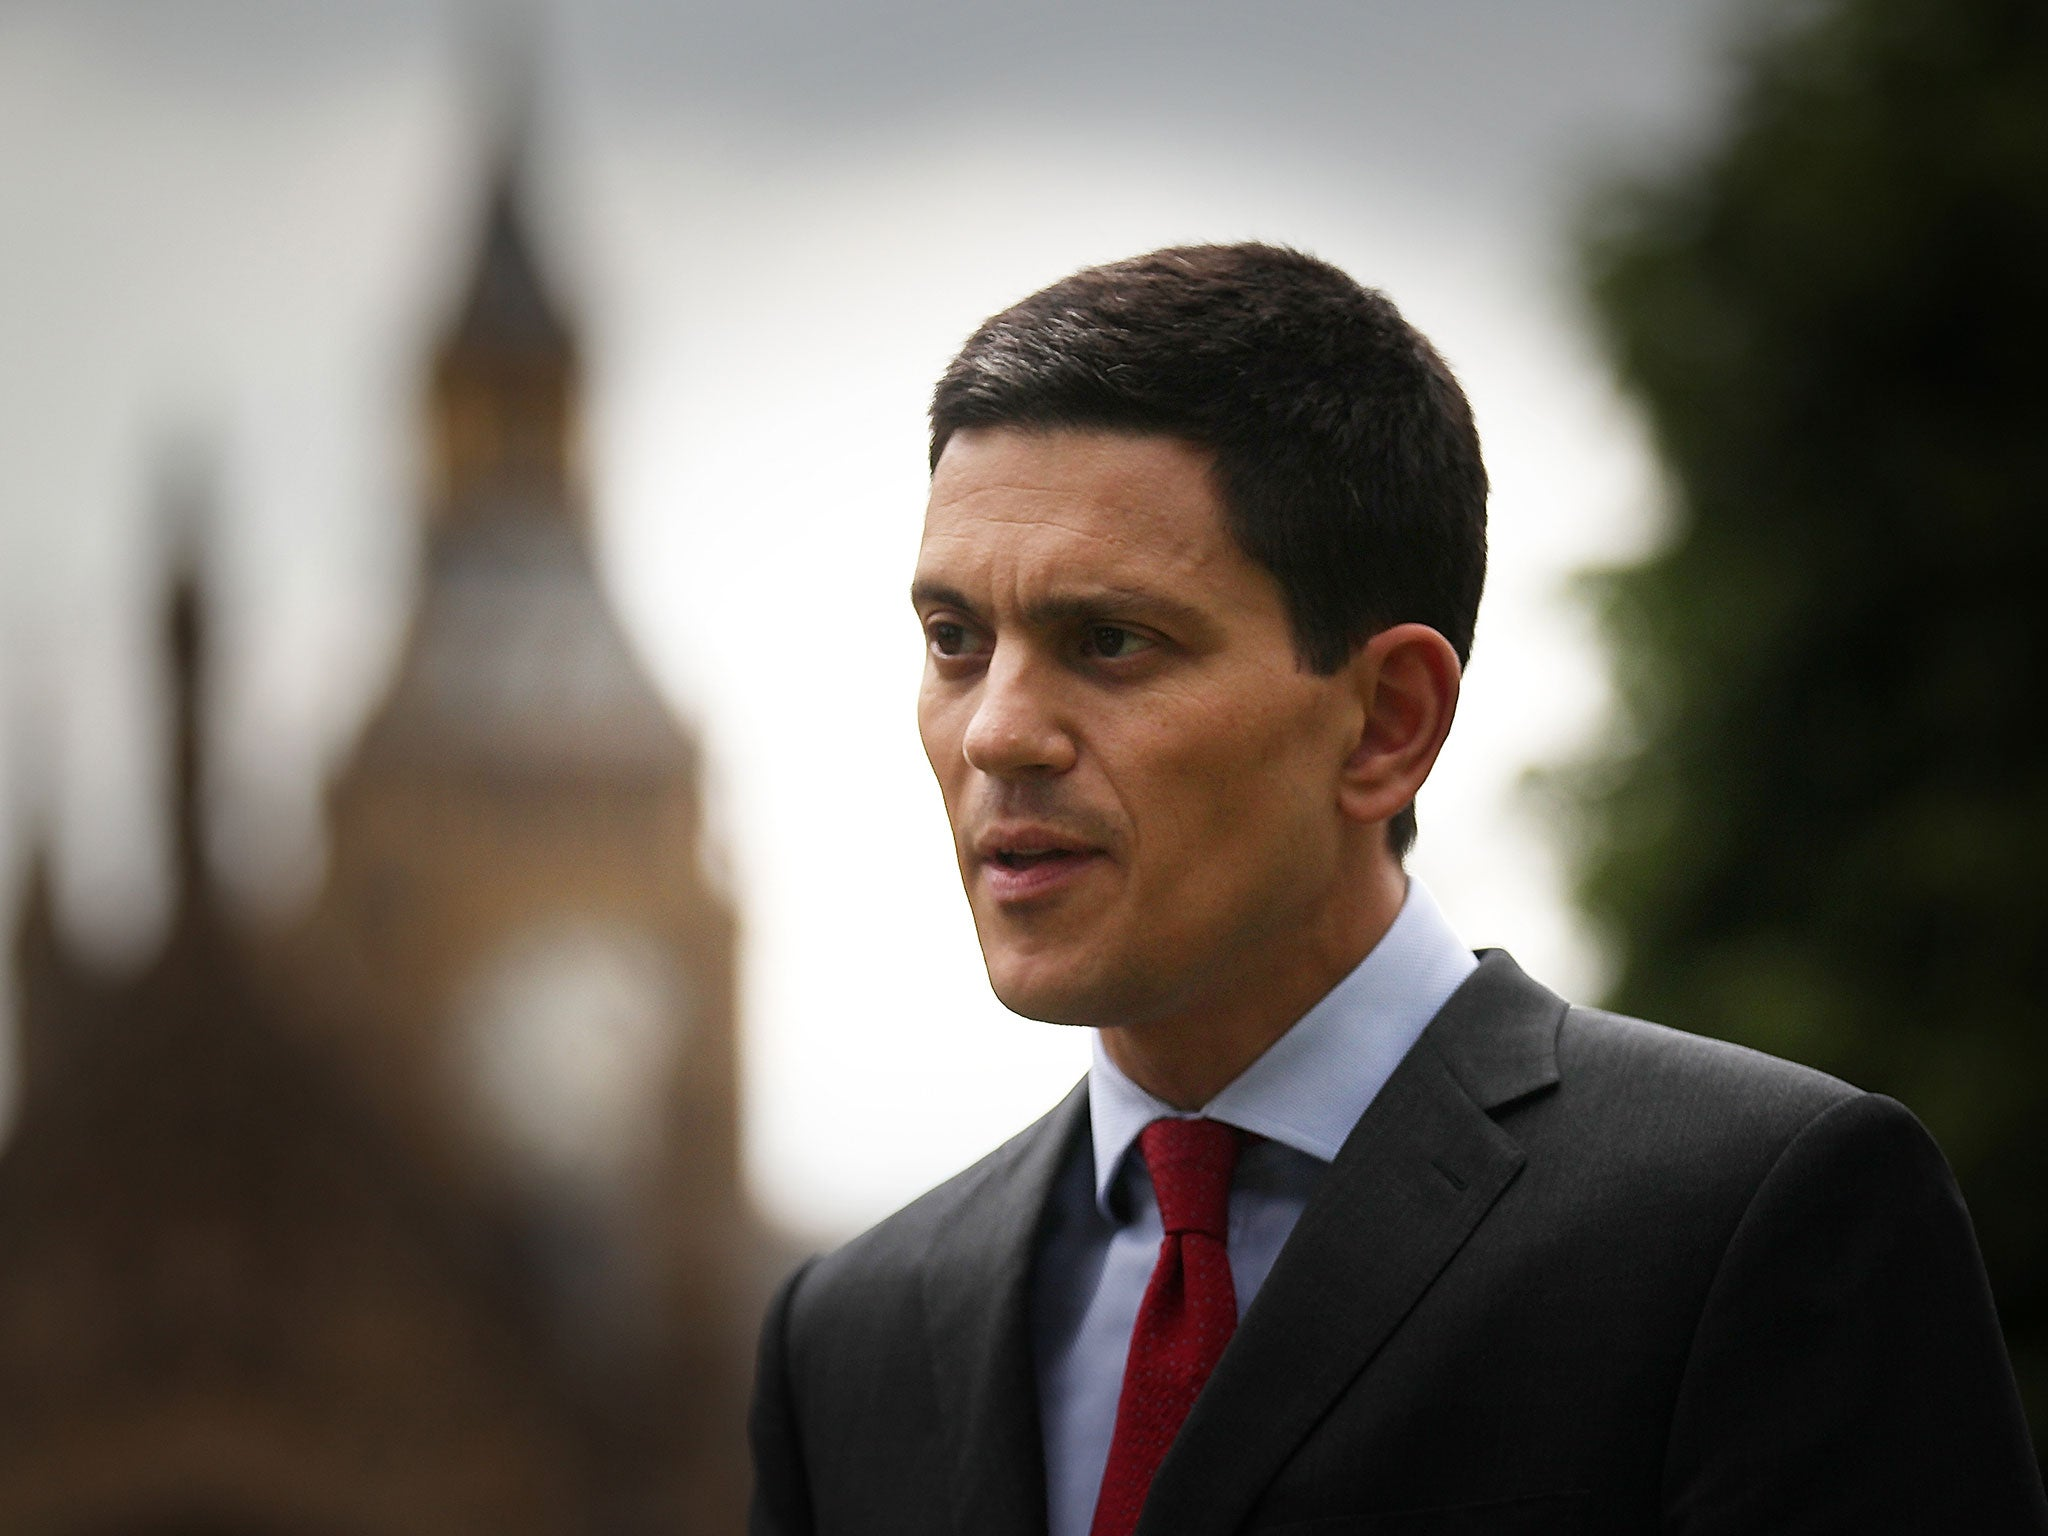 David Miliband: Labour is 'further from power than any time in the last 50 years'